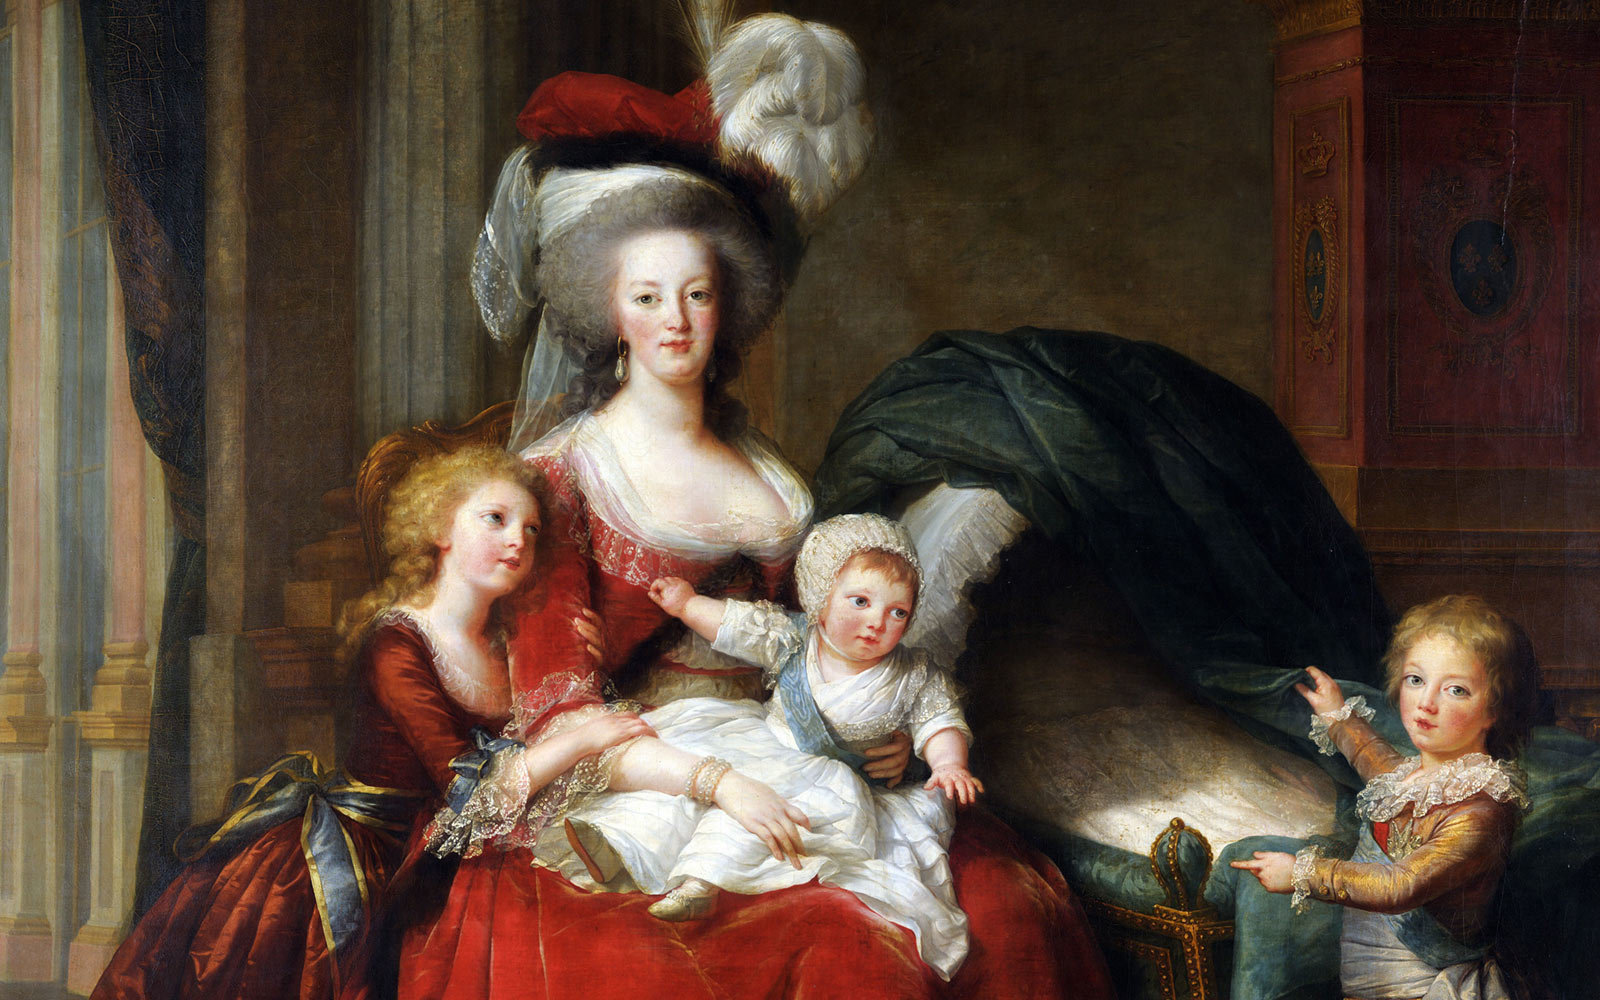 Marie Antoinette and her Children, Painted by Élisabeth Vigée Le Brun